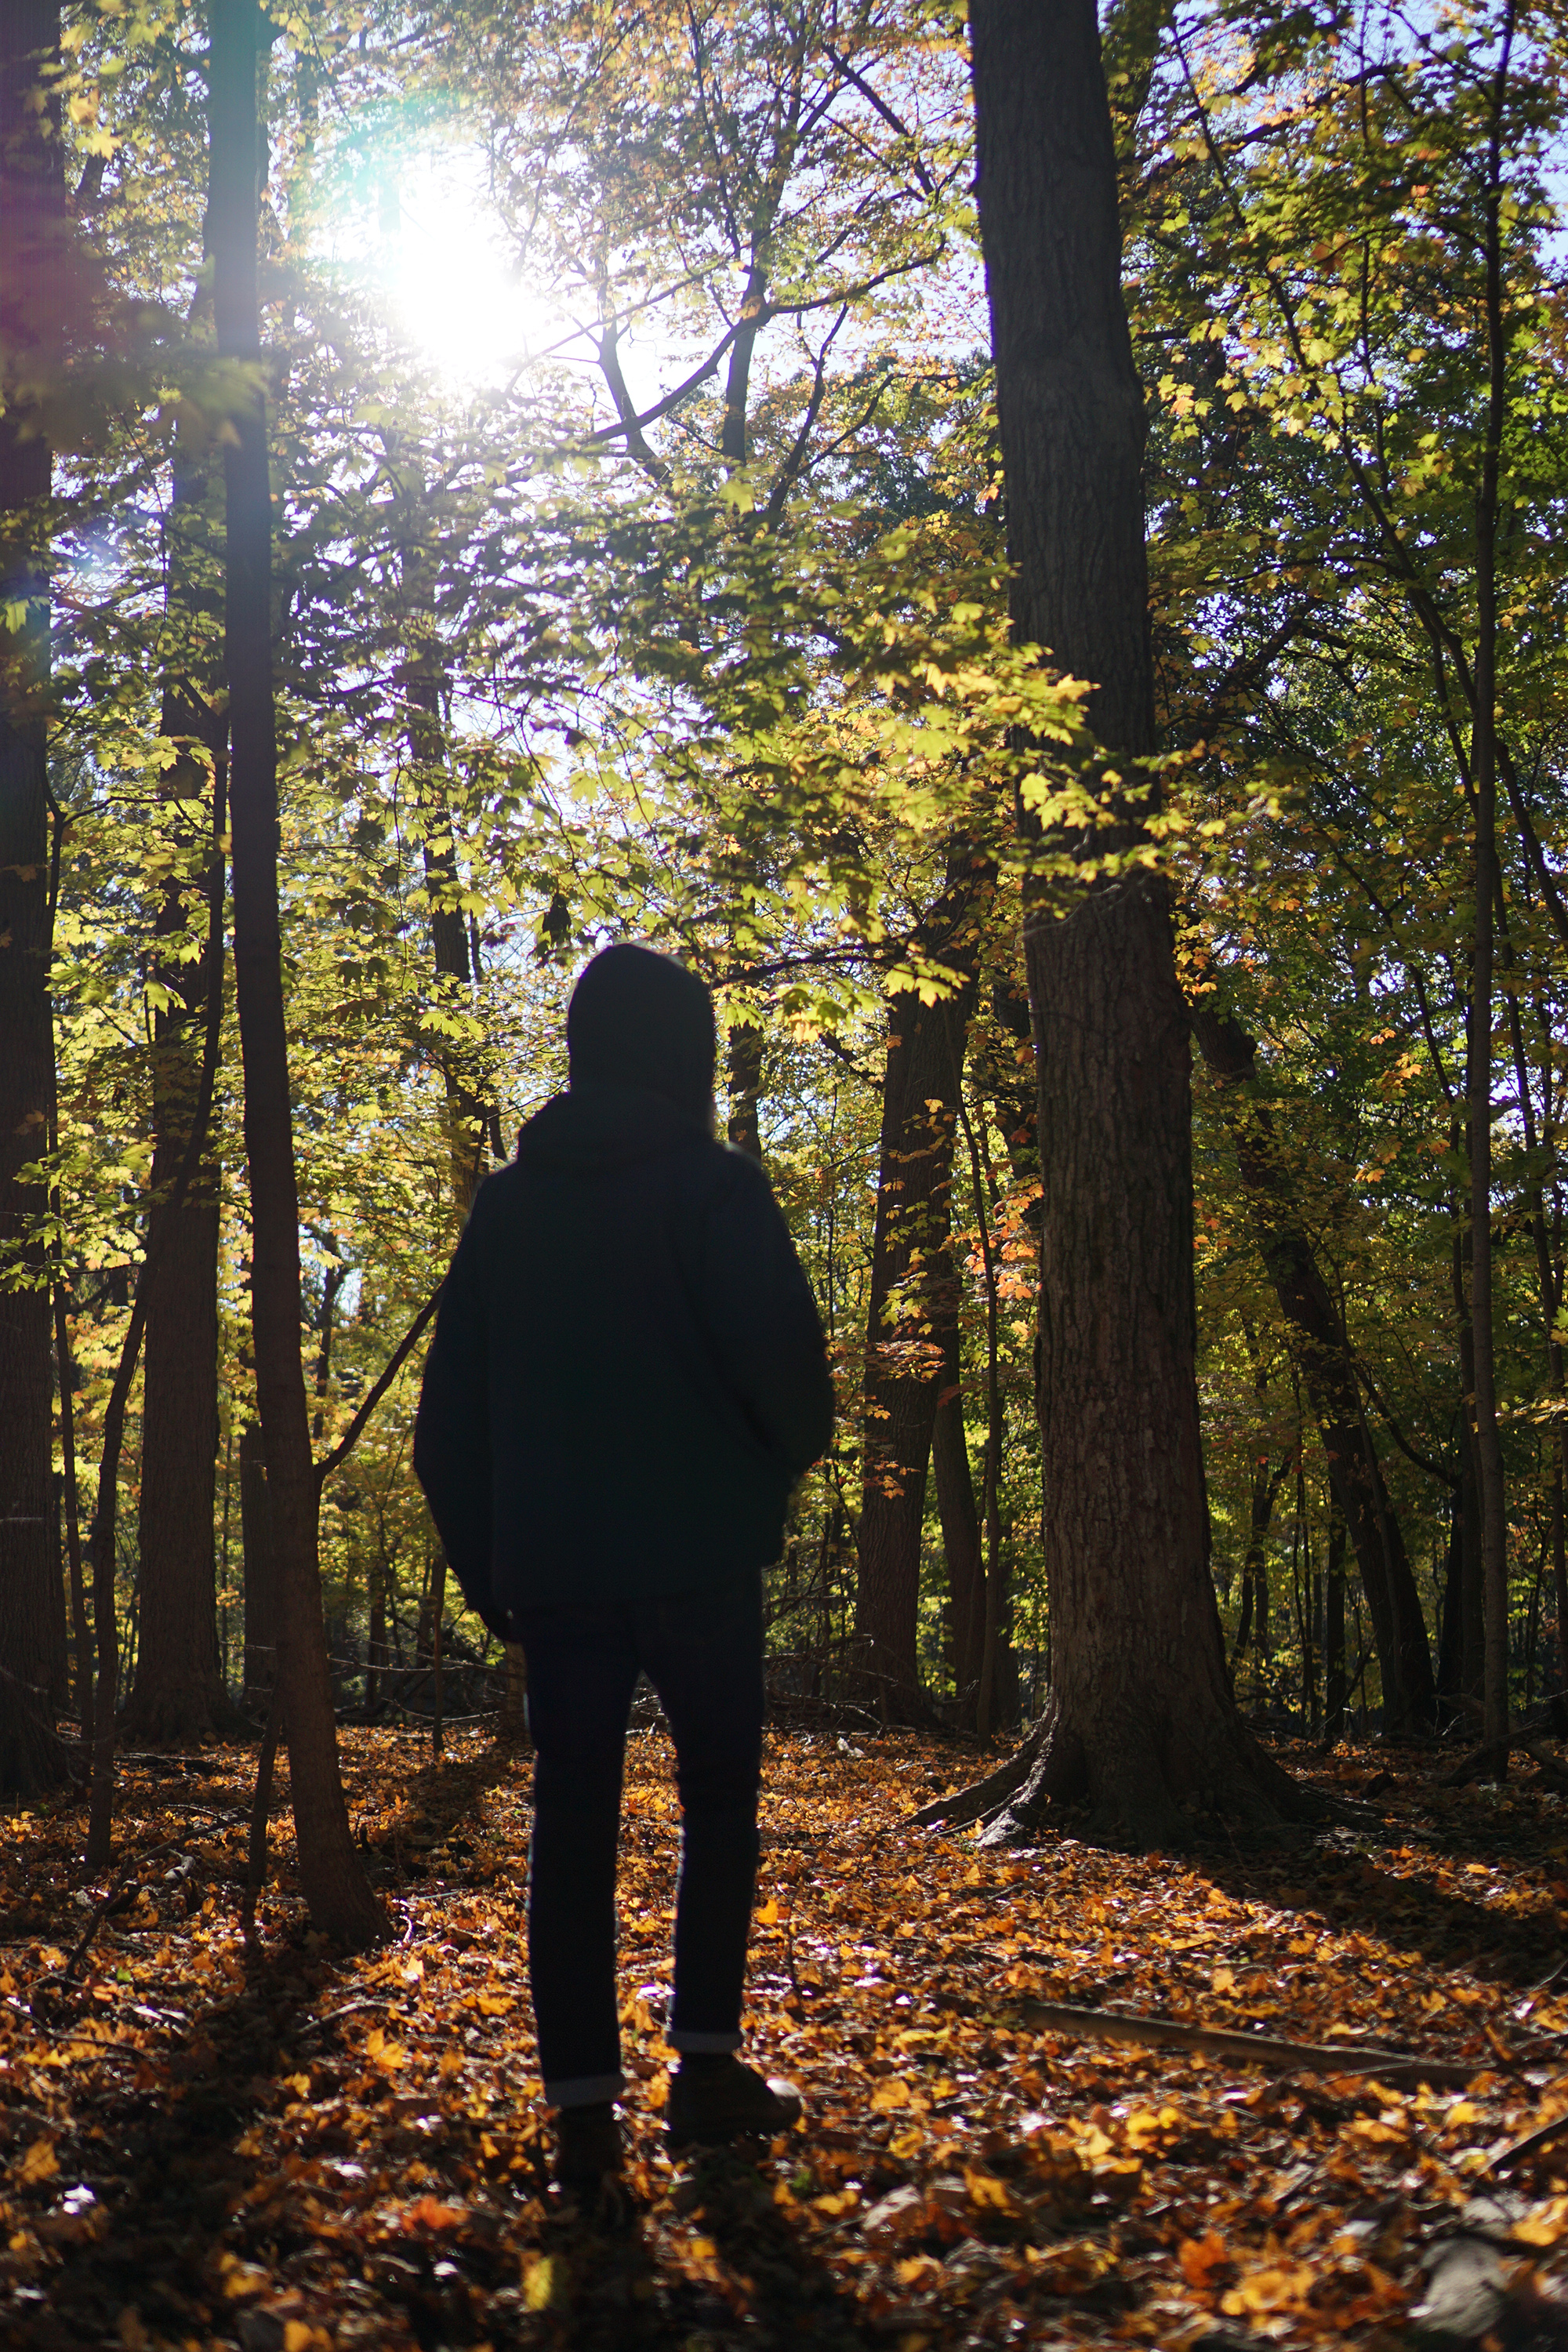 Man silhouetted against fall foliage in Miami Woods, Morton Grove Illinois / Darker than Green